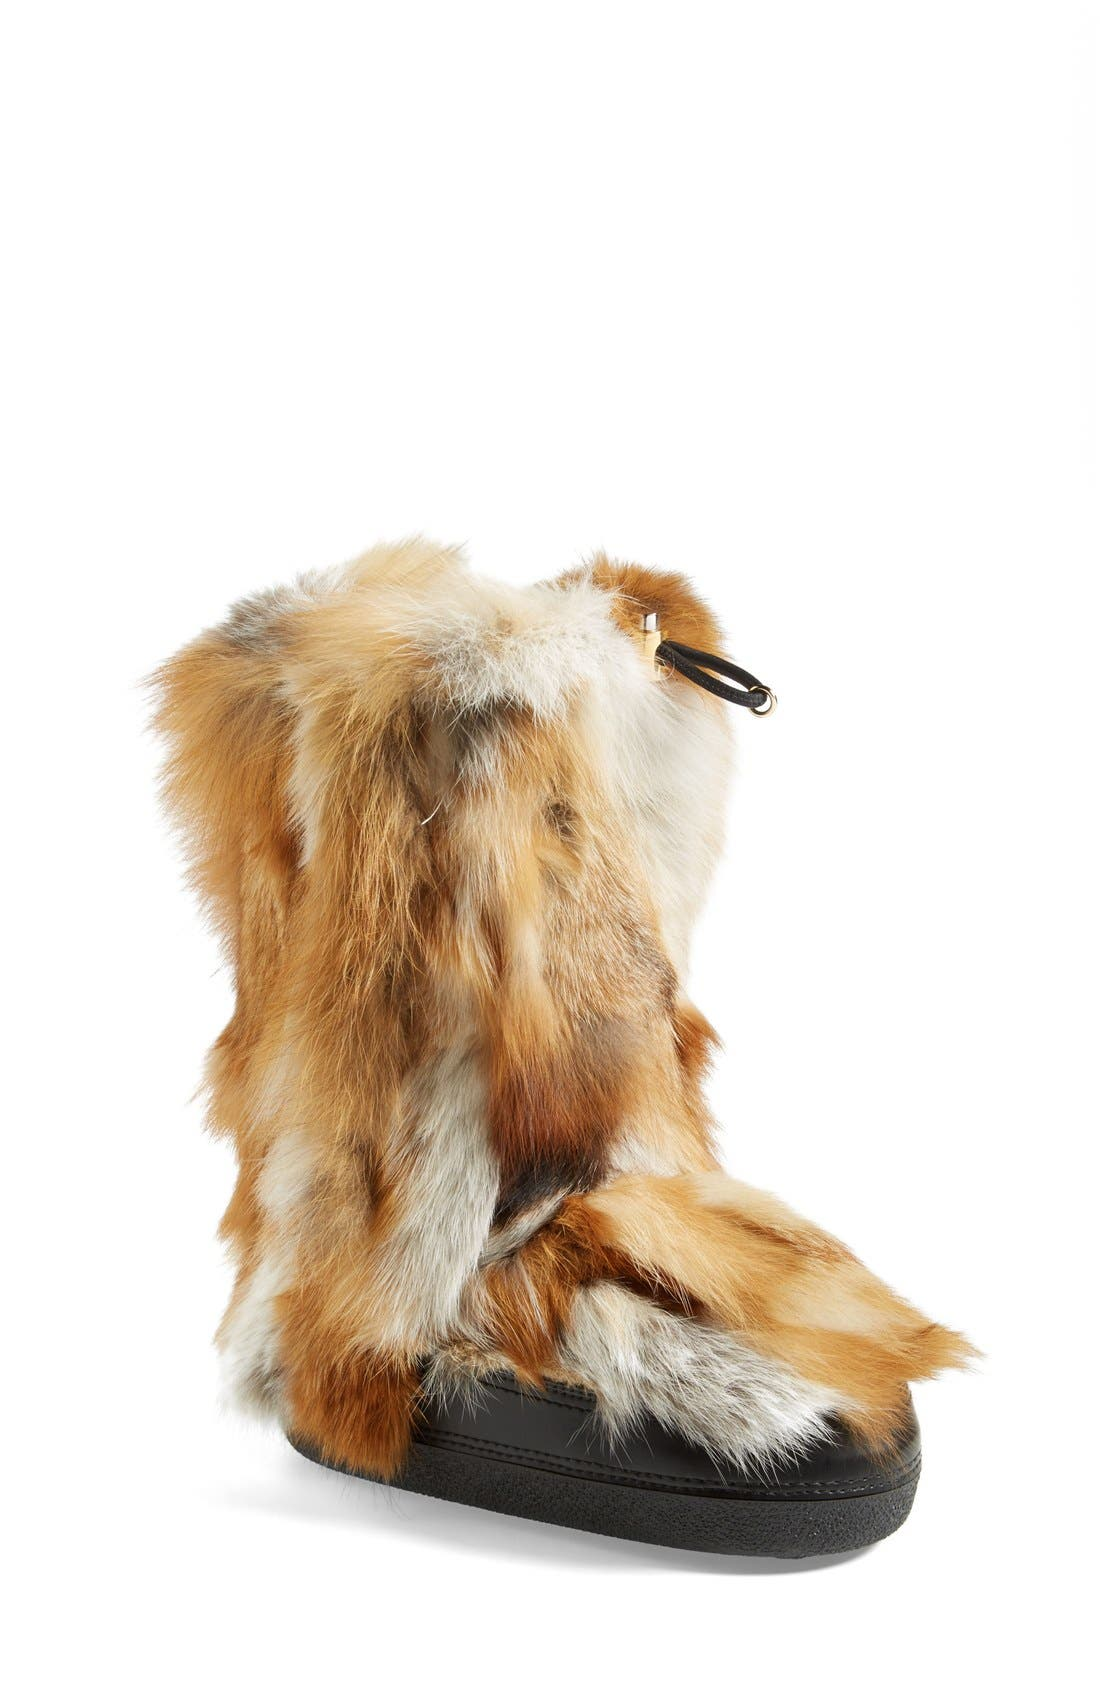 'Danny' Genuine Fox Fur Boot,                             Main thumbnail 1, color,                             250